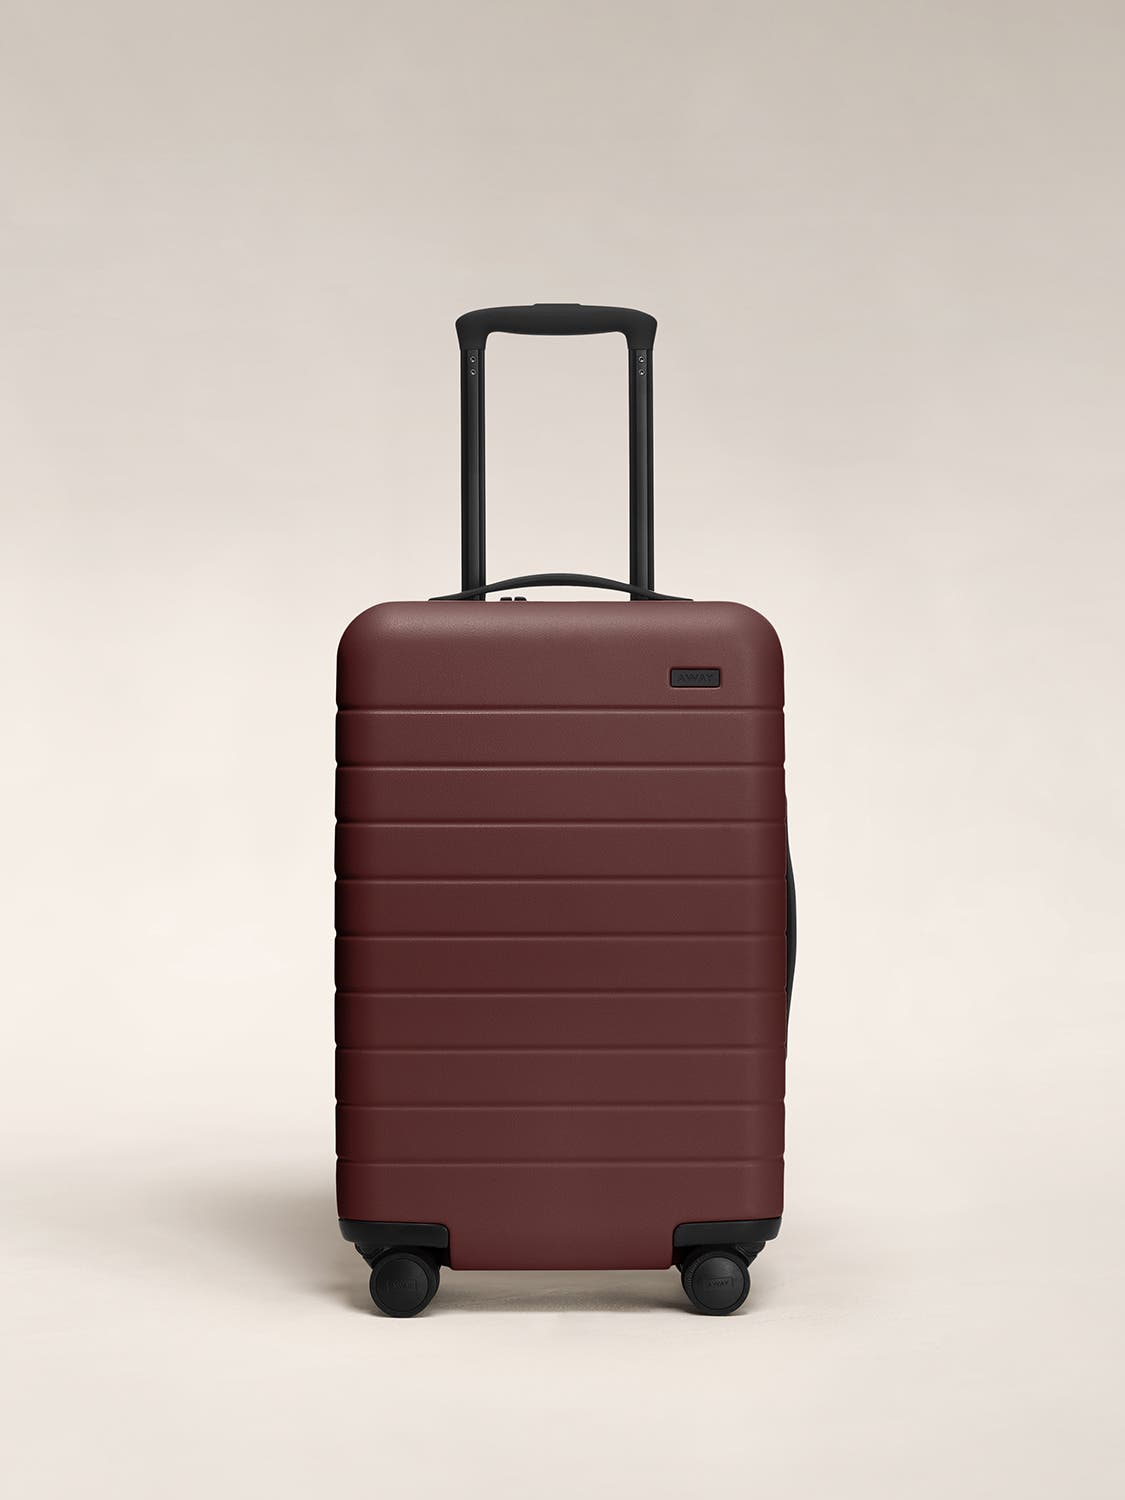 Front view of a brick red carry-on suitcase with a hard shell, nylon front pocket, and telescopic handle pulled out.